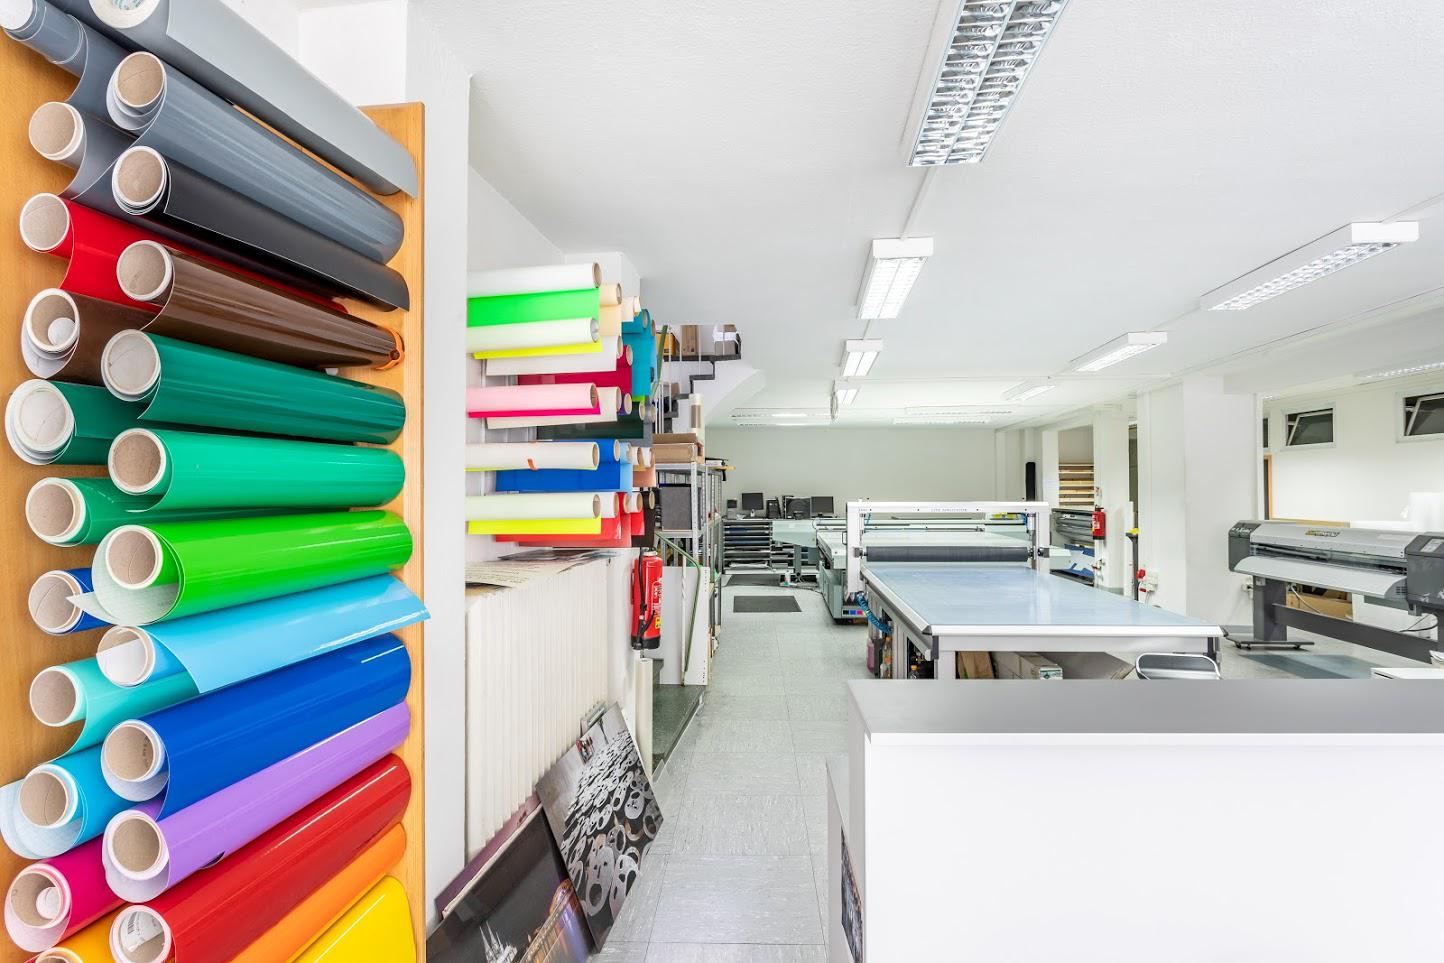 Bilder A&A Digital Print Center & Druckerei Bonn